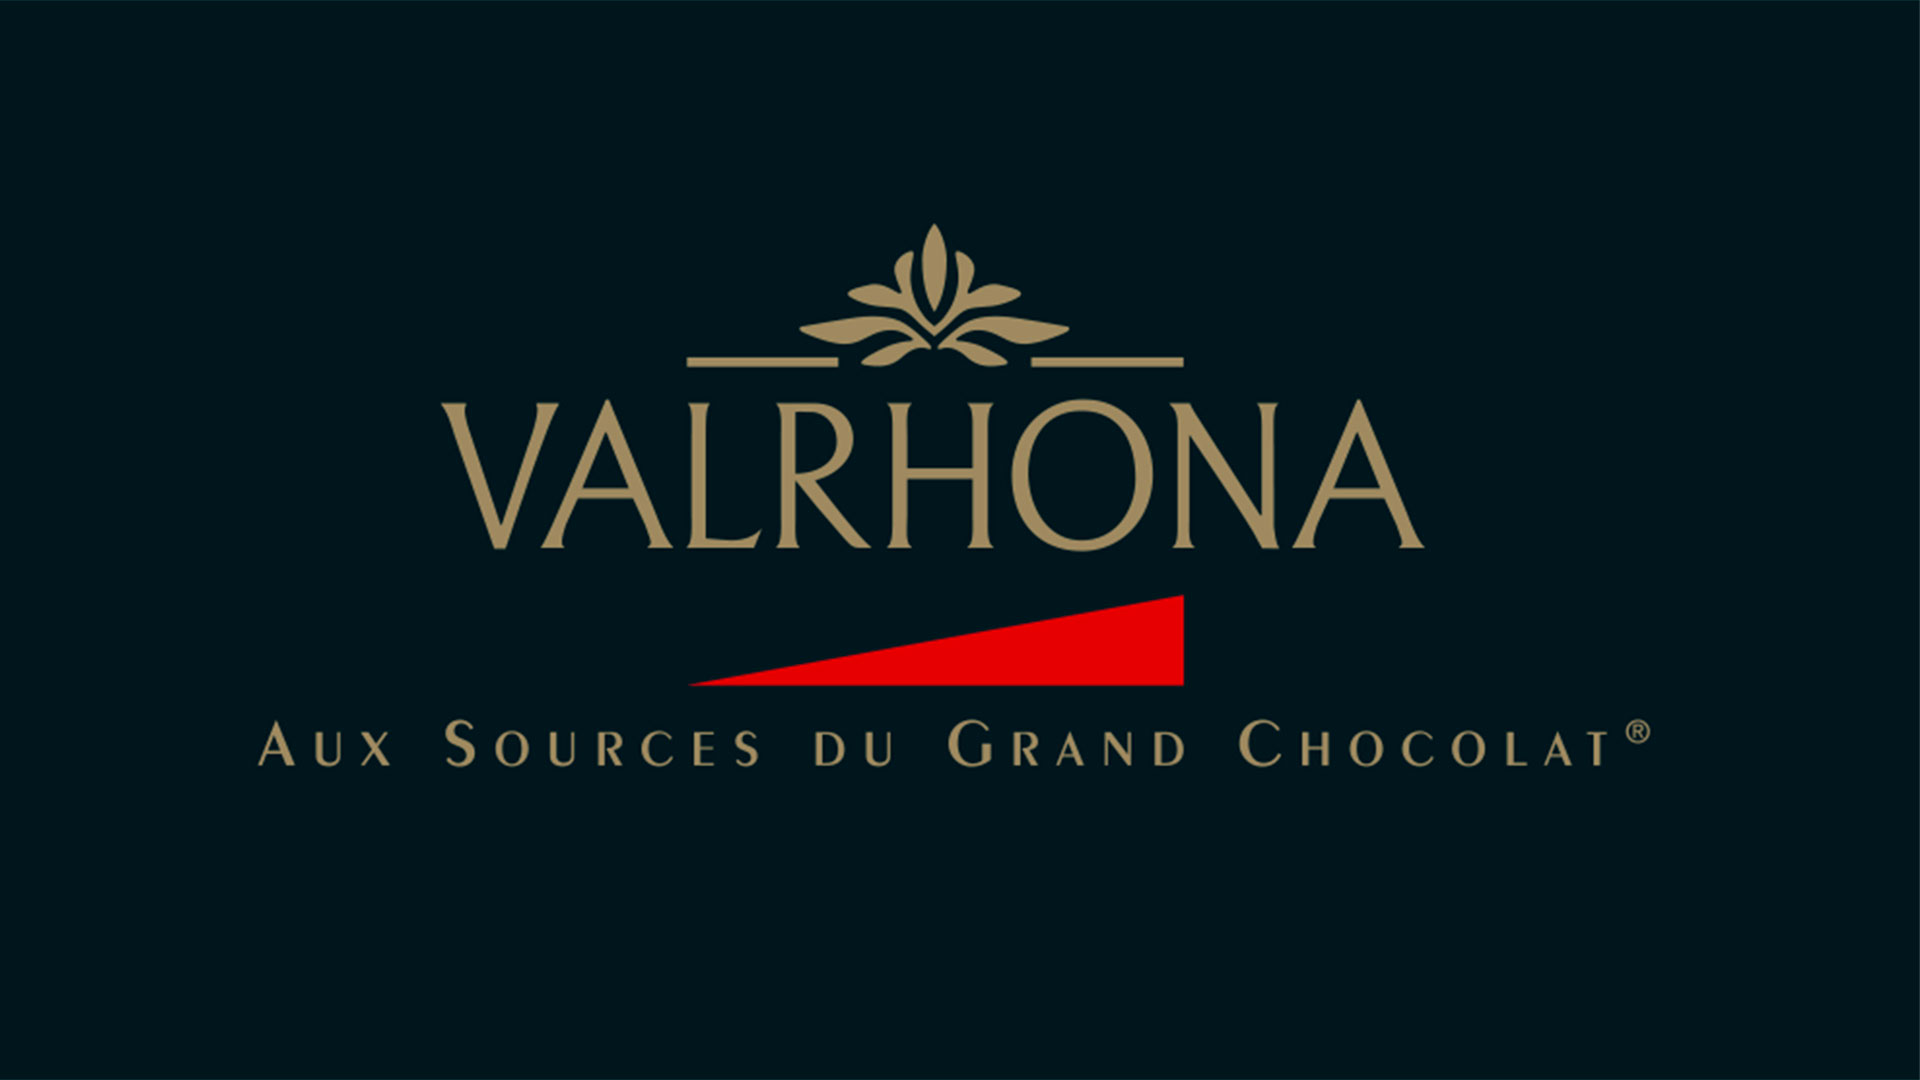 logo valrhona cartoon.design